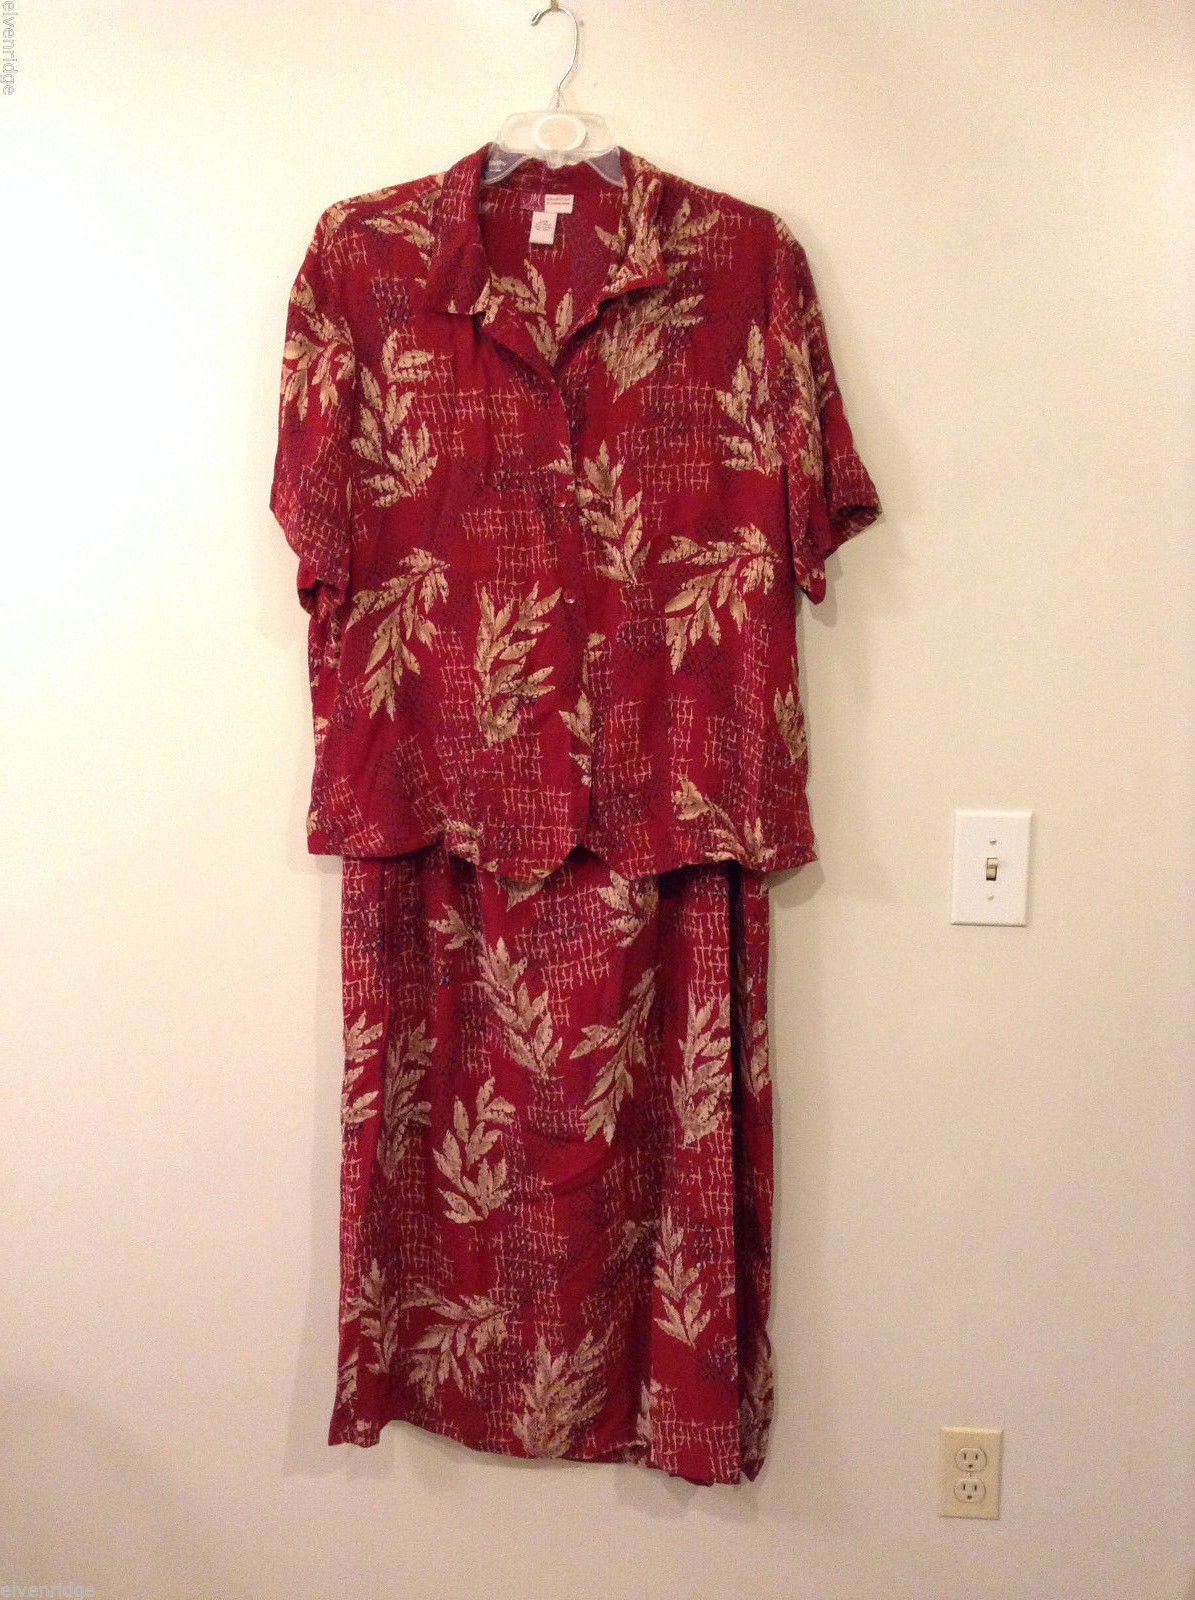 Jennifer Moore Blouse Skirt 2 piece set Red Light Brown Floral Pattern size 24W